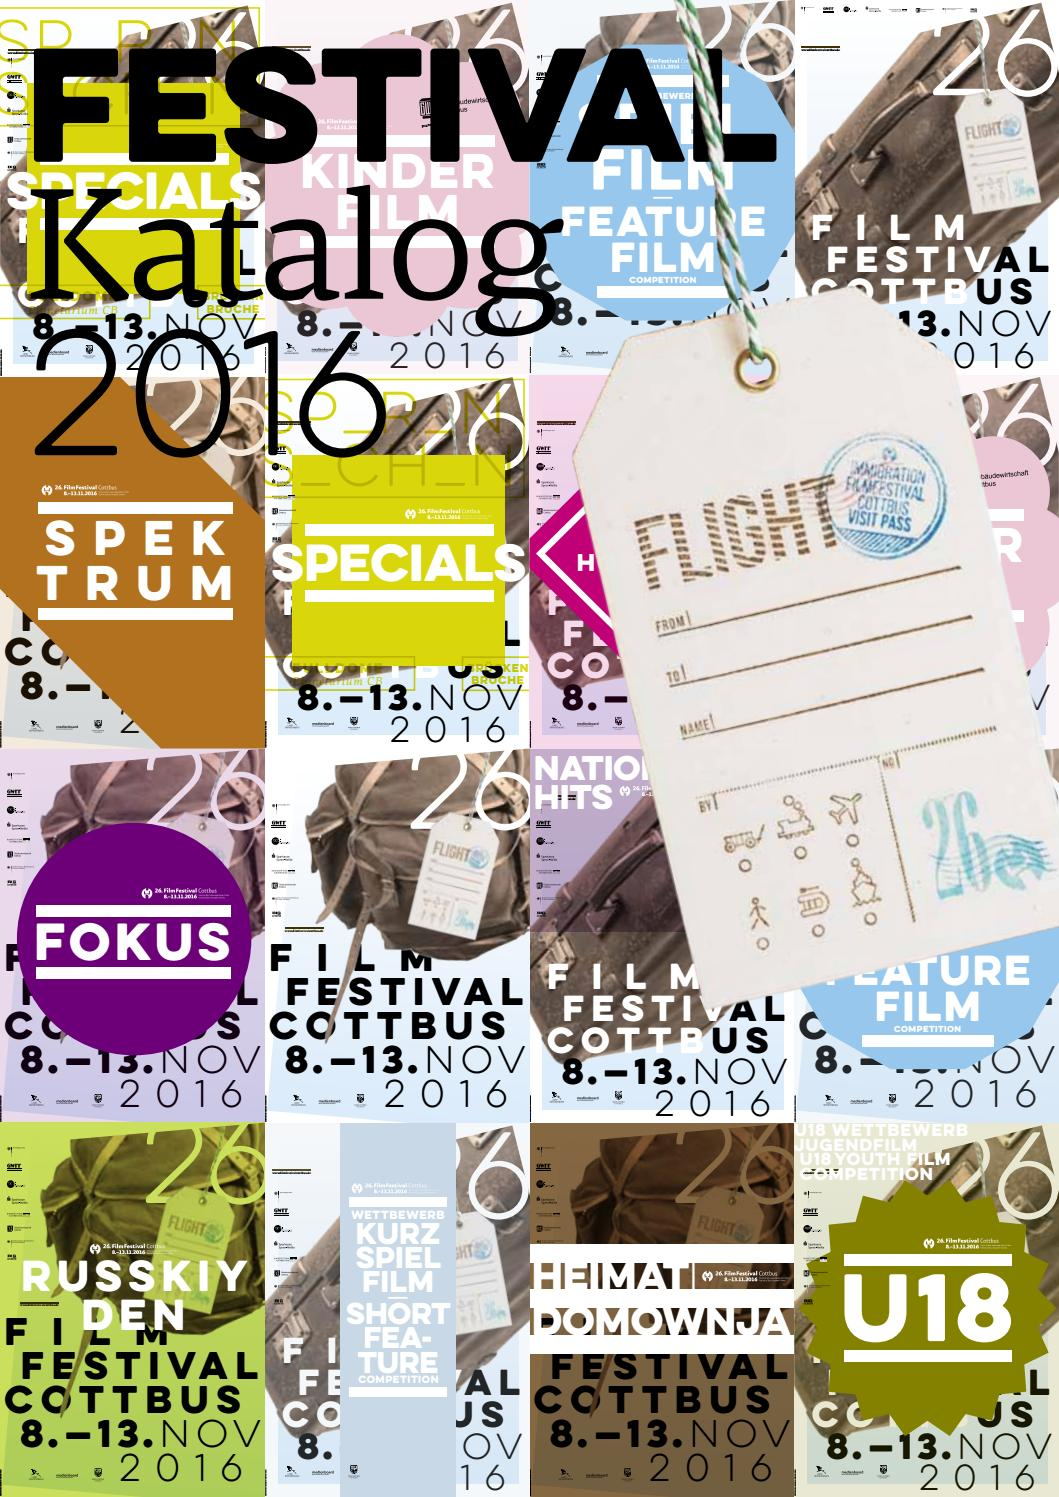 26. FilmFestival Cottbus Katalog|Catalogue by FilmFestival